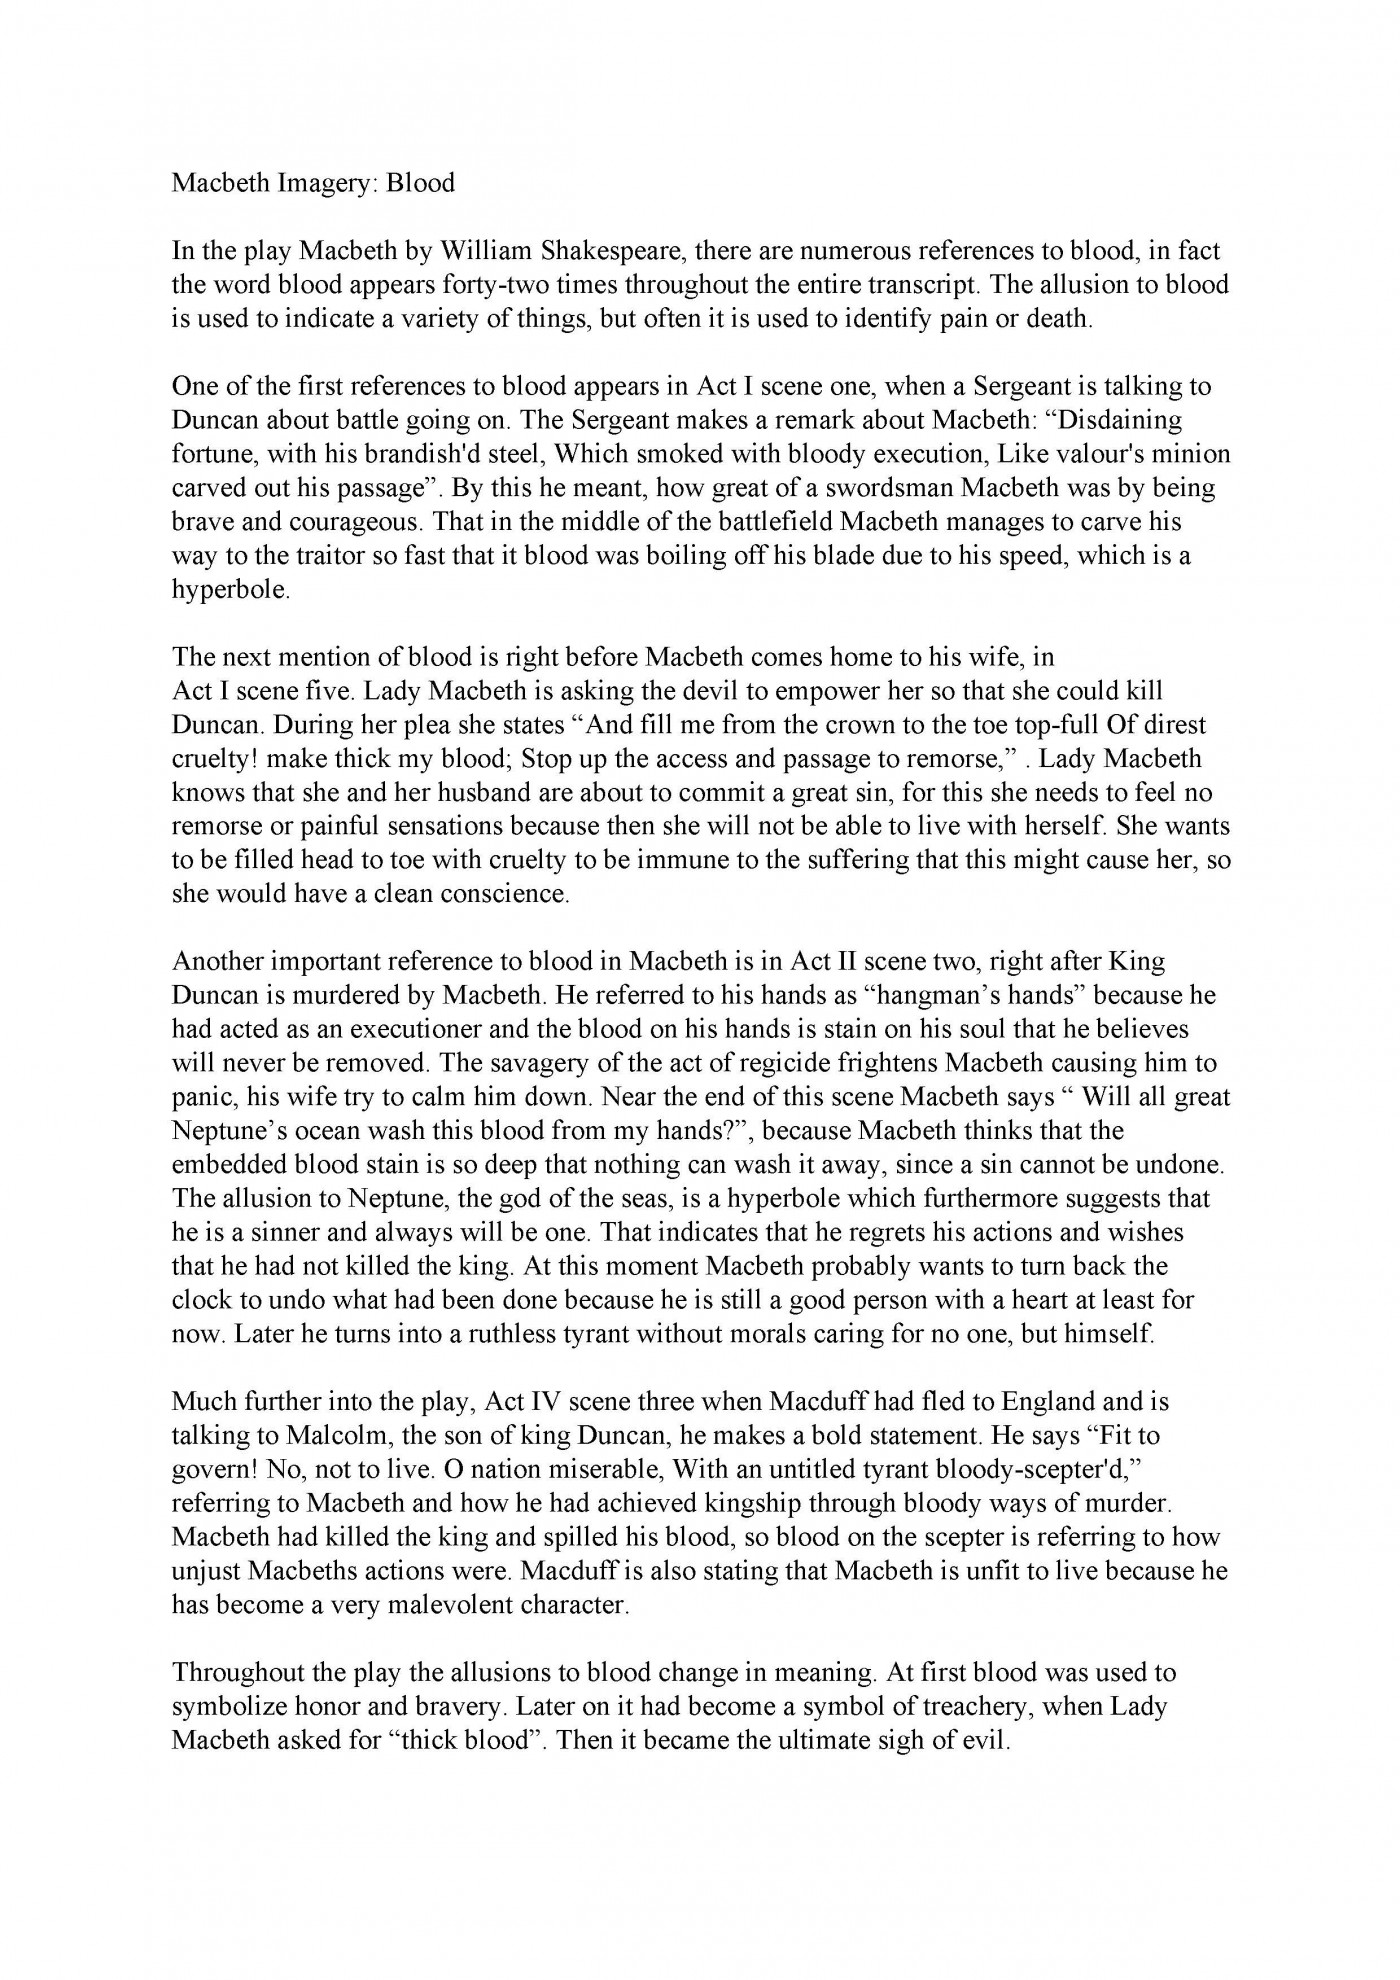 002 Macbeth Essay Sample Impressive Example Examples In Literature Opinion Pdf Scholarship About Yourself 1400